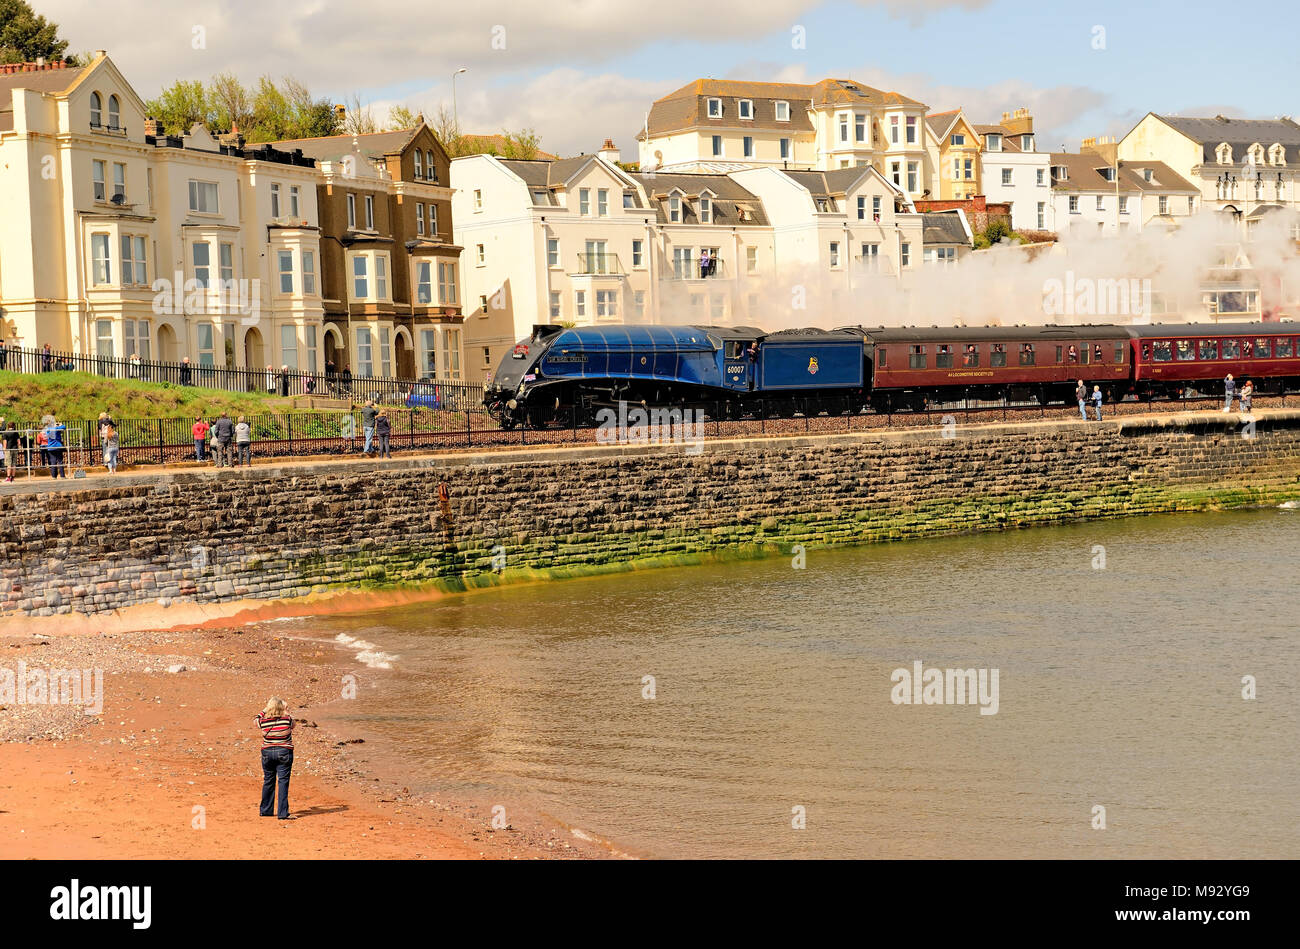 The first steam train to travel over the re-built railway at Dawlish, after the line had been destroyed during the great storms of February 2014. - Stock Image